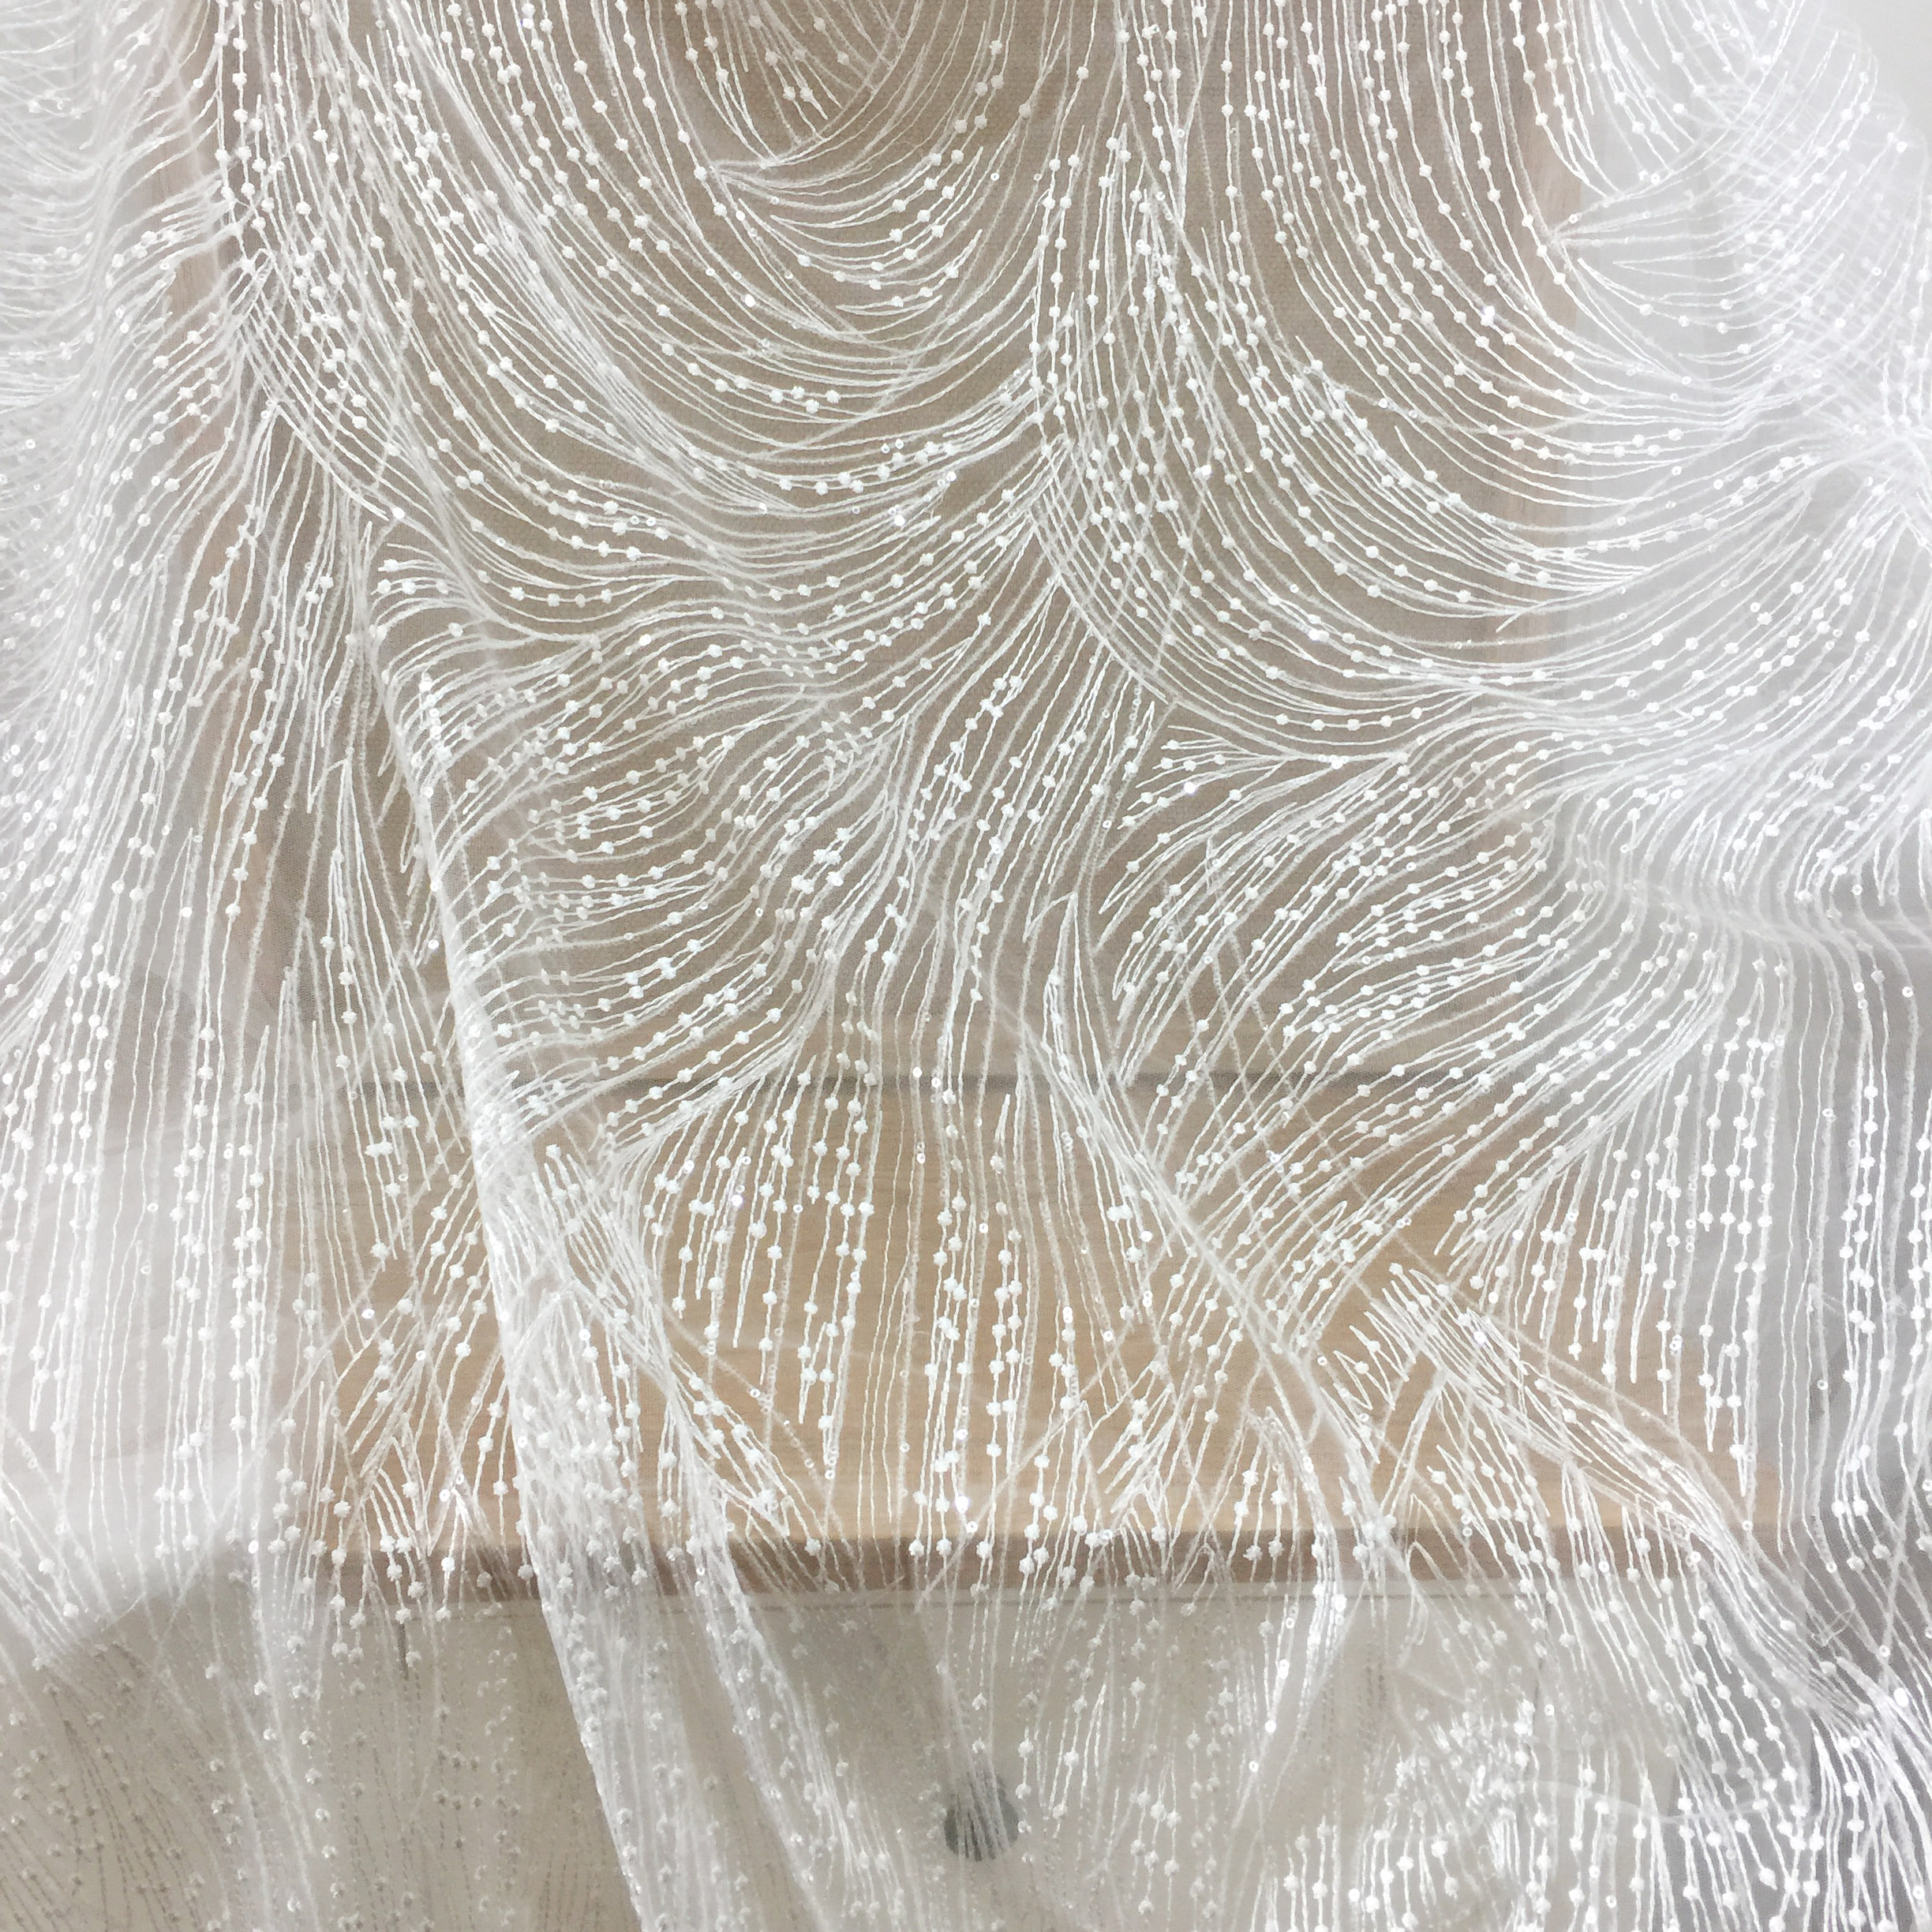 1 Yard Geometric Embroidery Lace Fabric By Yard With TRANSLUCENT Sequins , Birdal Gown Couture Fabric In Off White